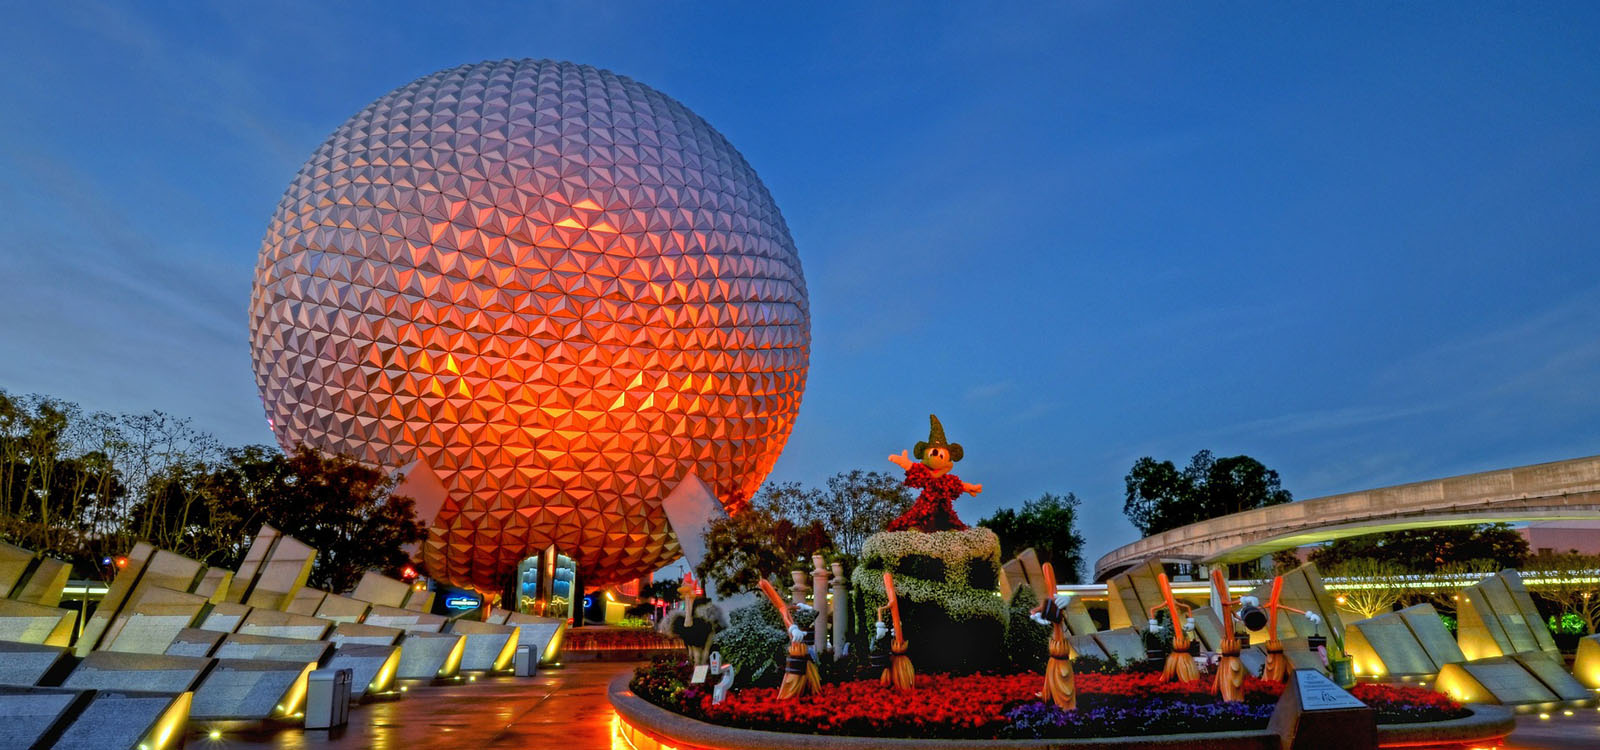 Epcot theme park with globe for Orlando theme park deals.